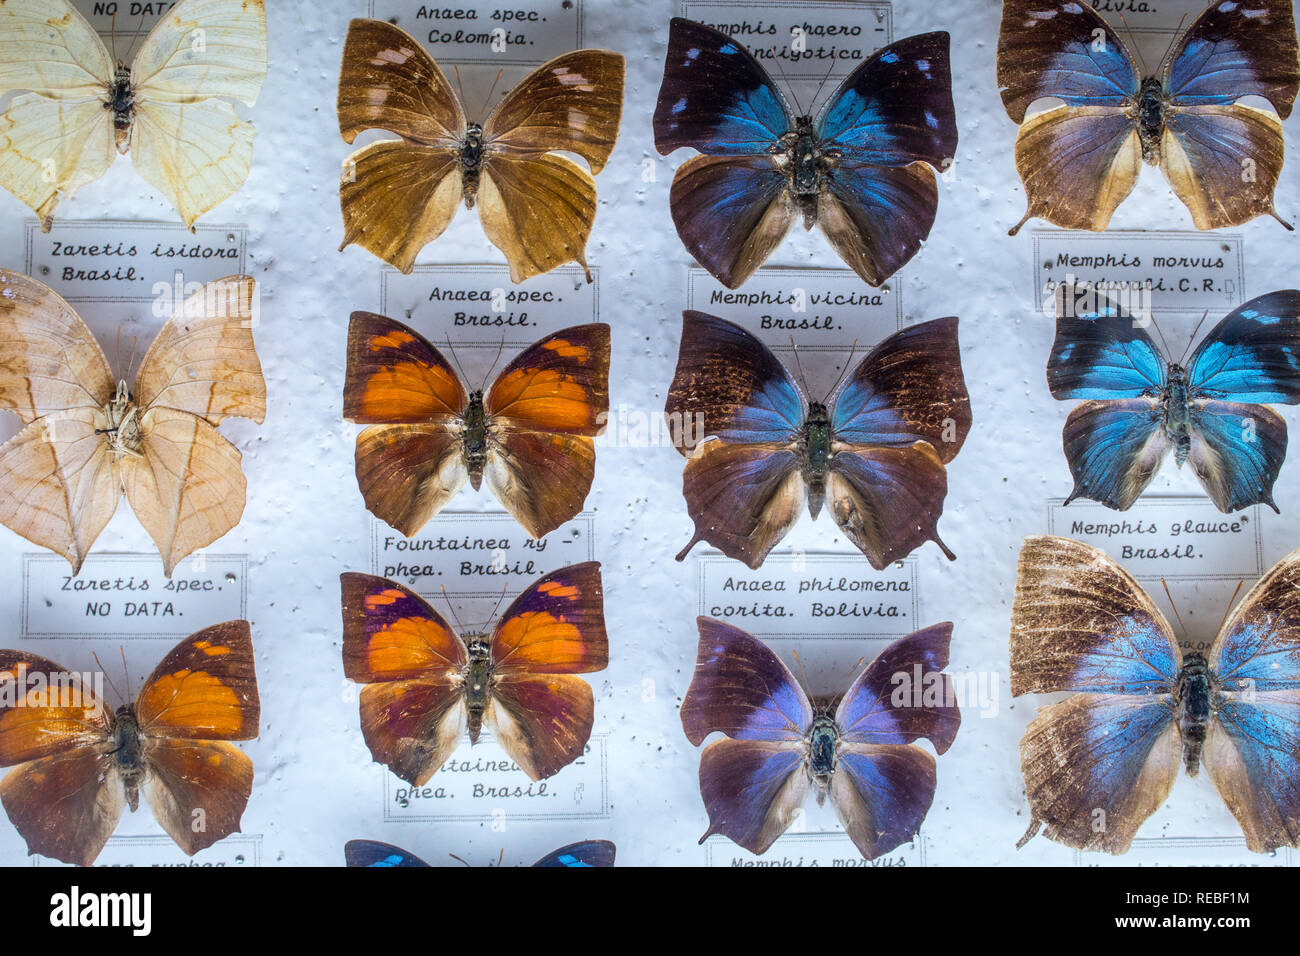 A colorful entomological collection of pinned tropical butterflies, With etiquettes. Stock Photo